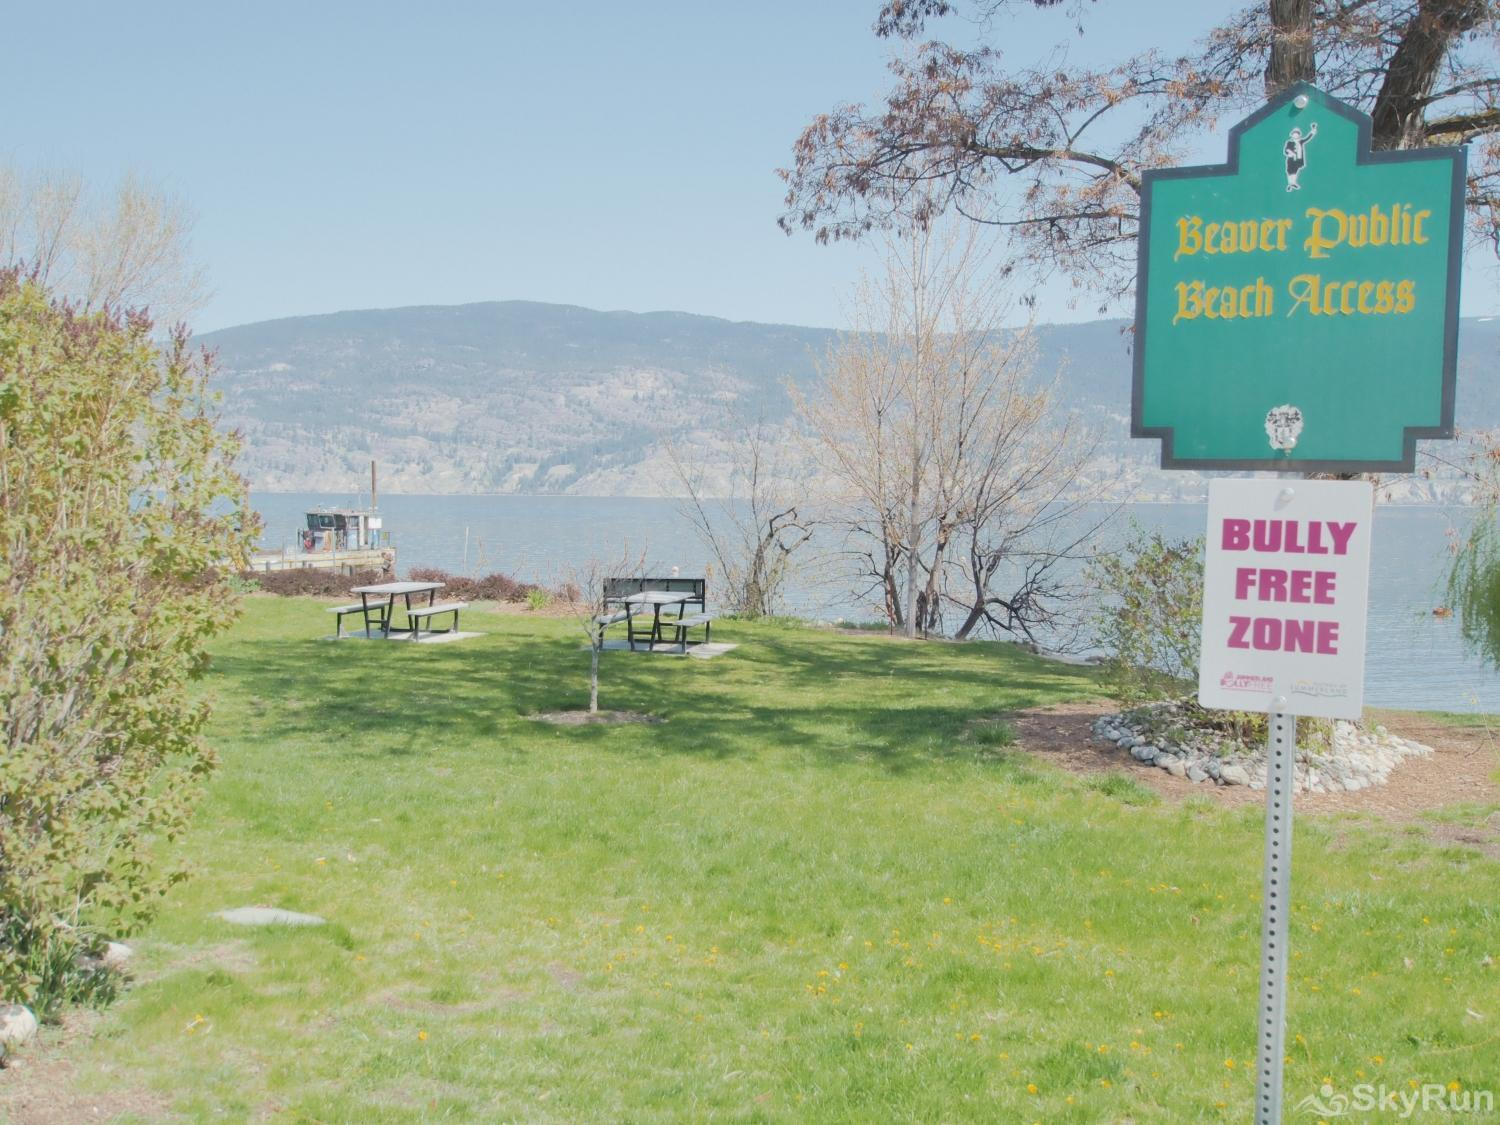 Old Summerland 3 bedroom home Just steps away to beaver beach